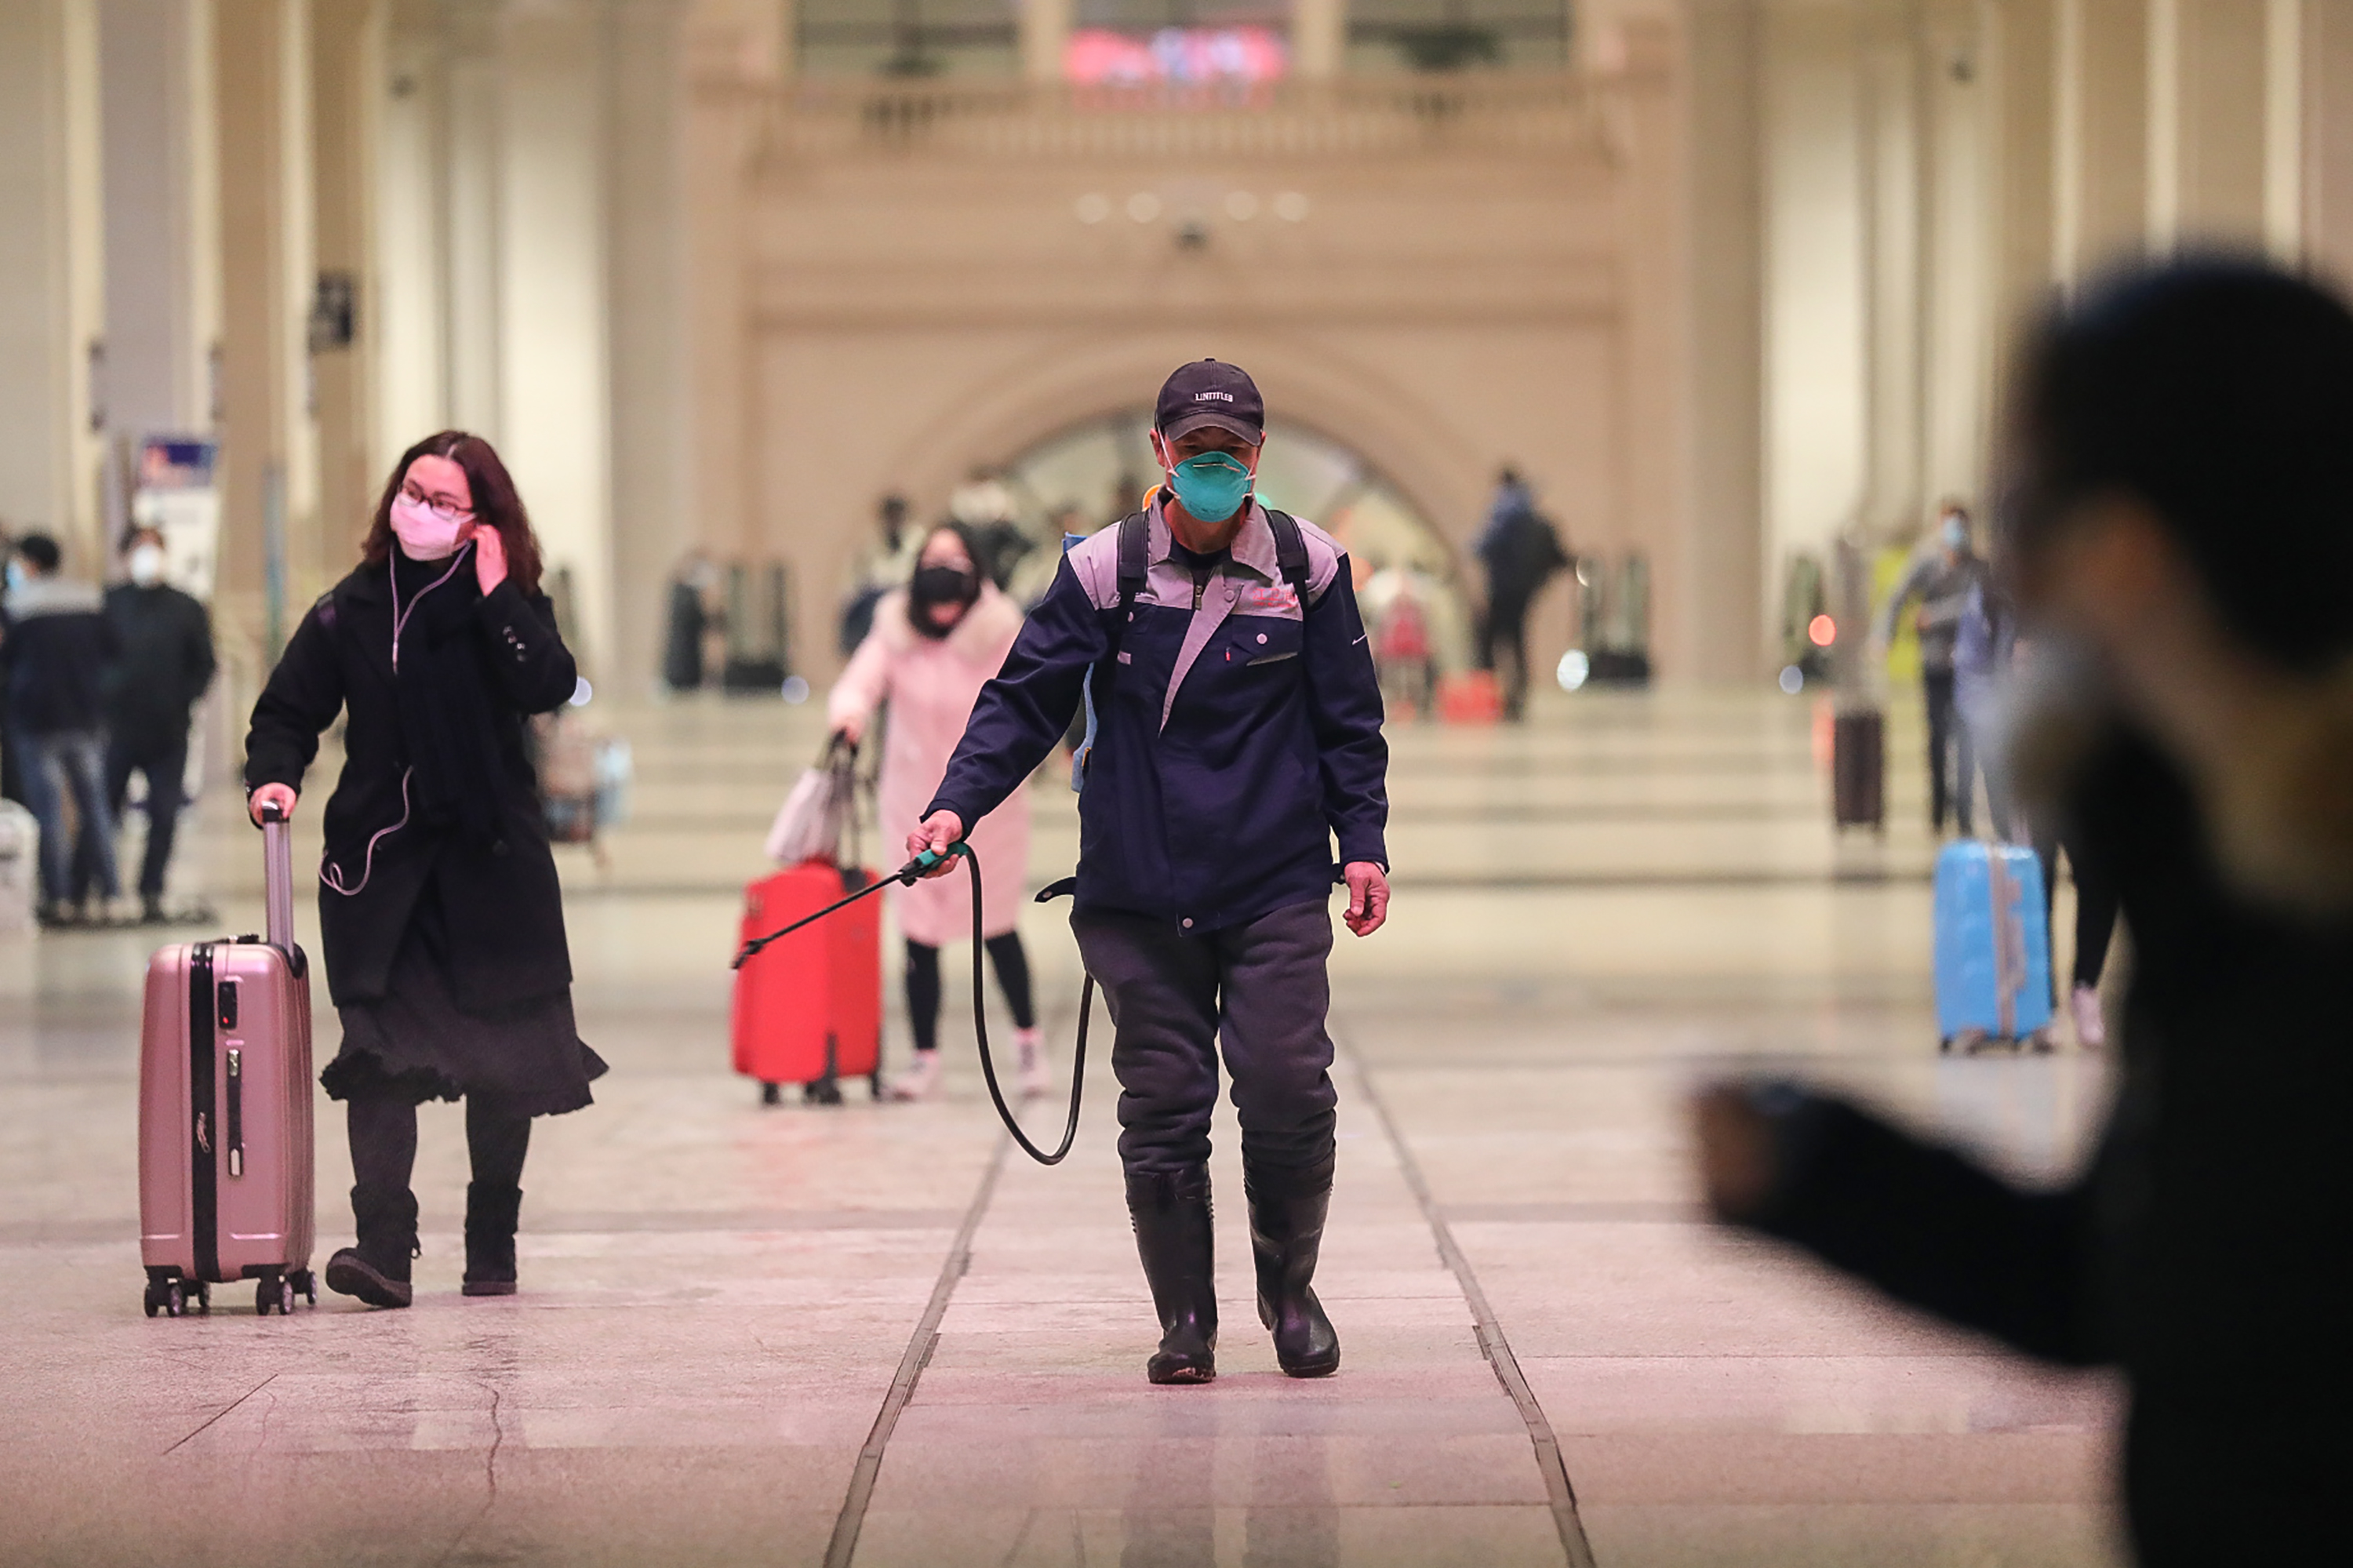 A staff member disinfects surfaces at the Hankou Railway Station in Wuhan, in China's central Hubei province early on Wednesday.